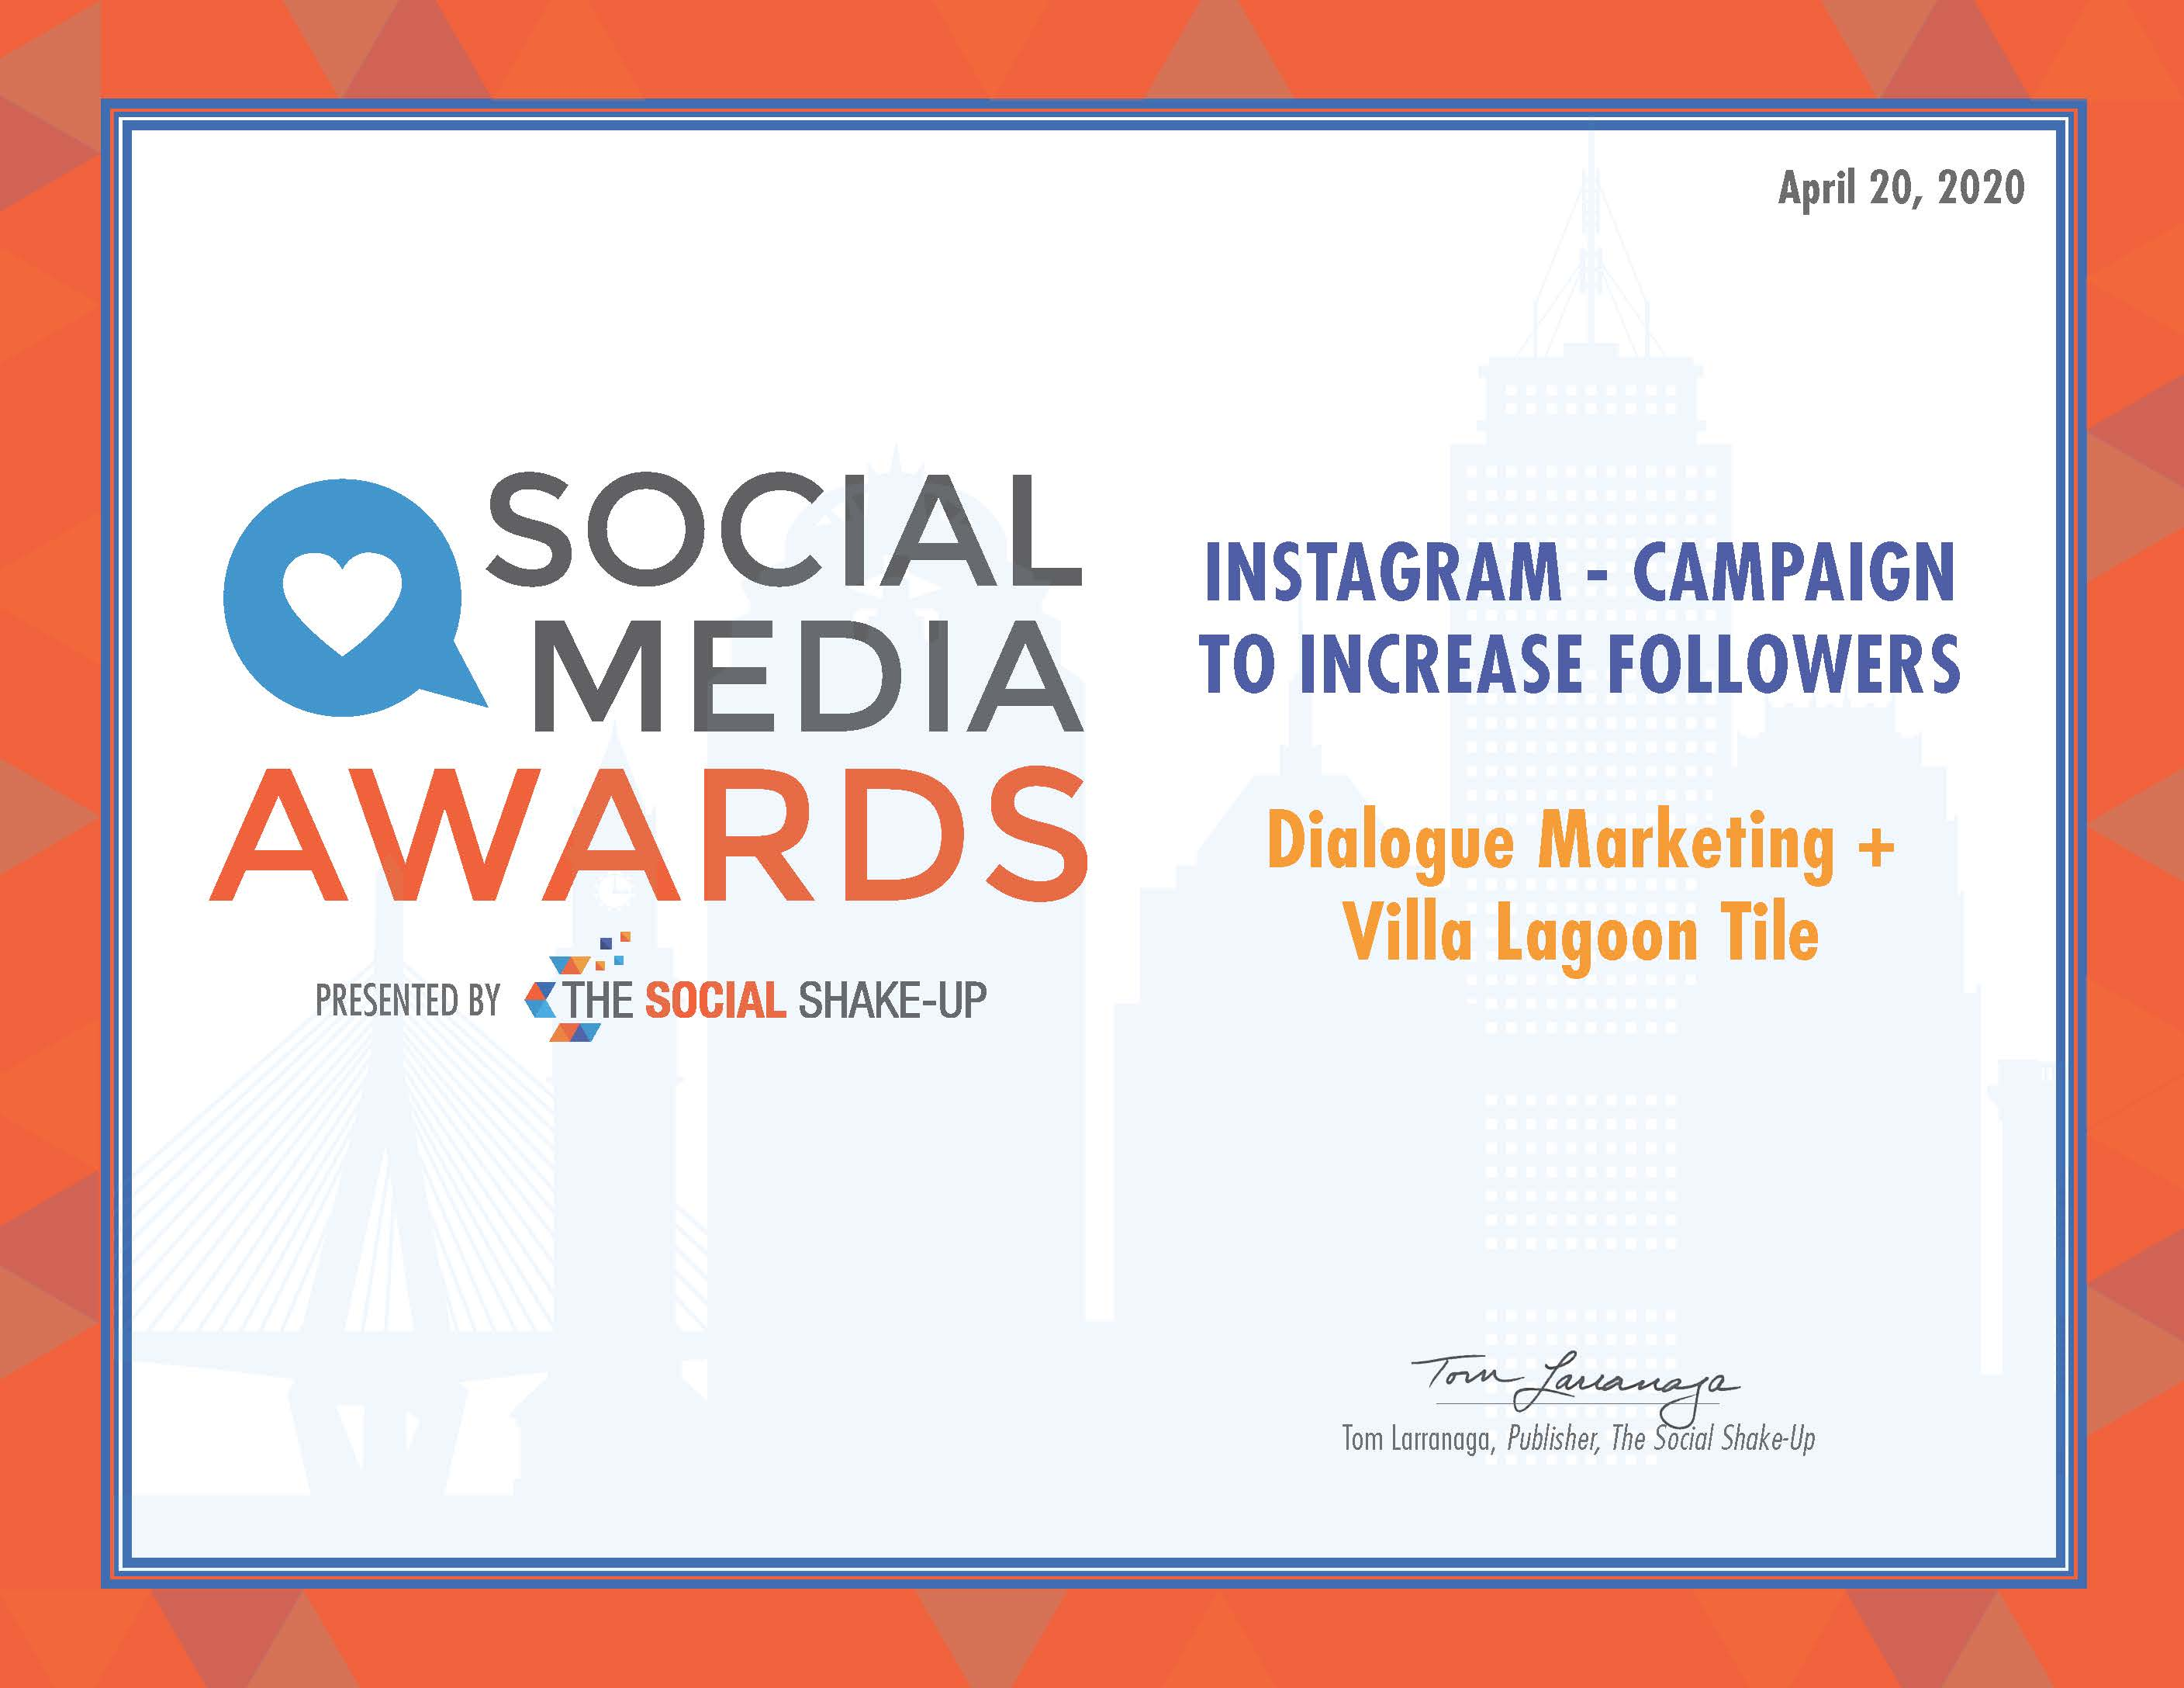 Instagram Campaign to Increase Followers_Dialogue Marketing